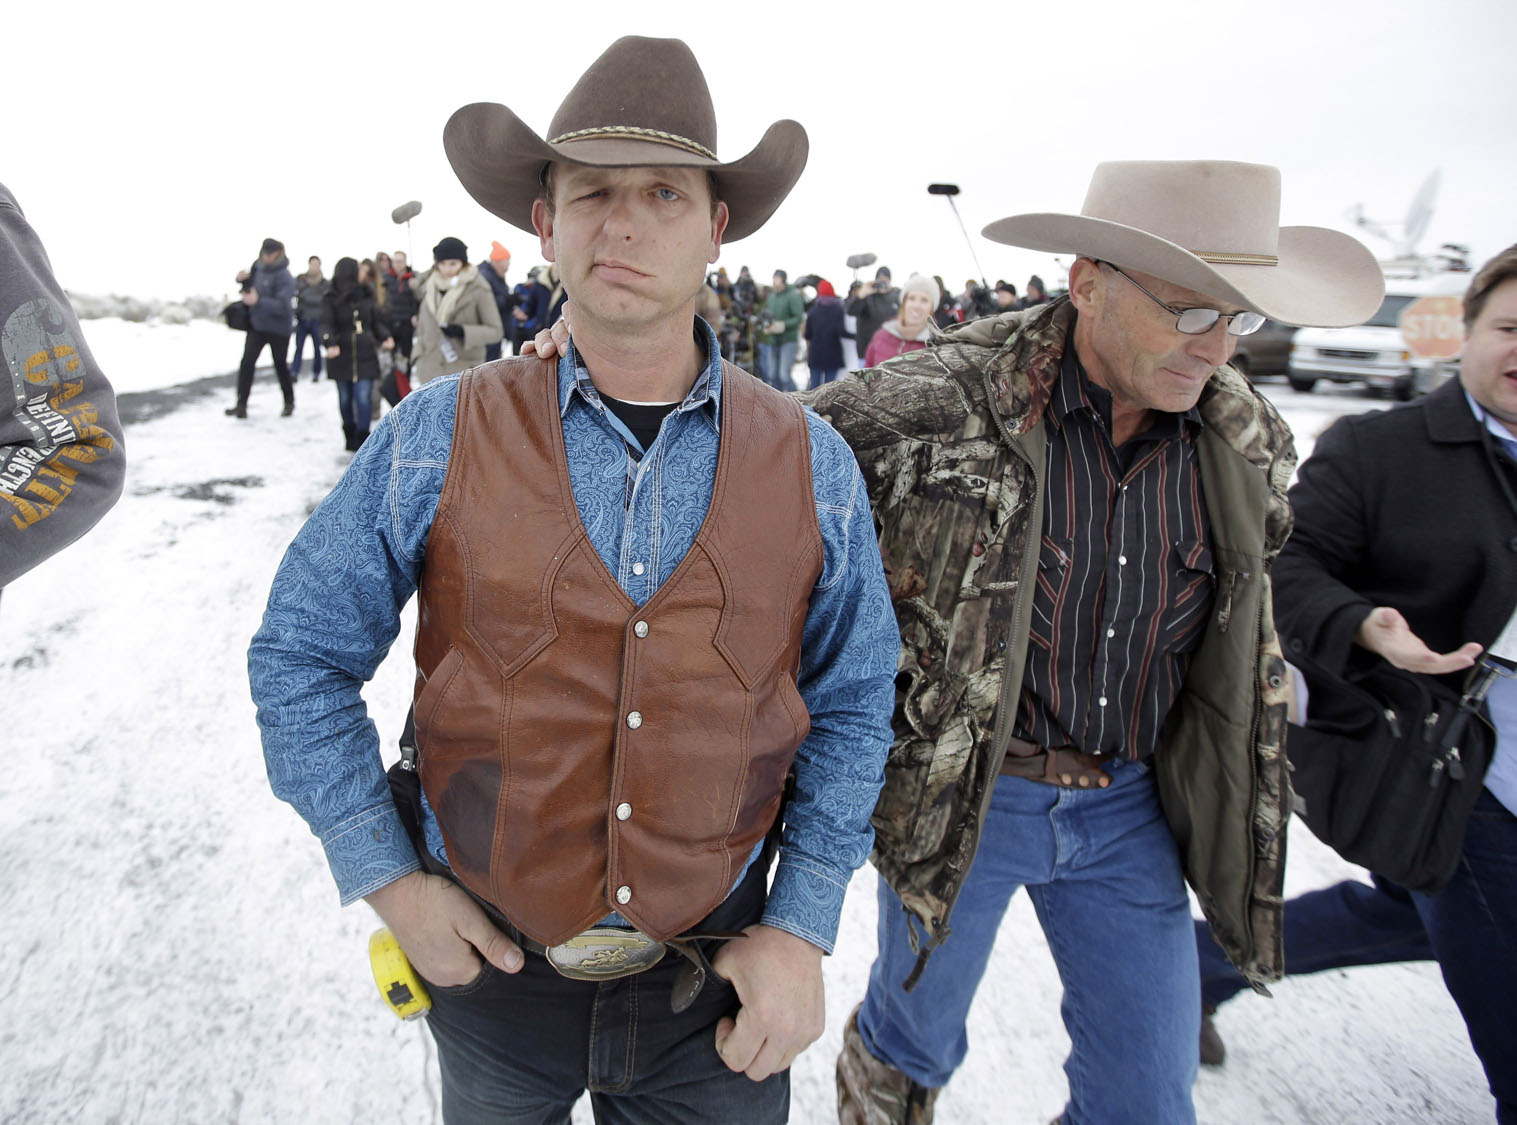 Armed standoff at Oregon wildlife refuge continues